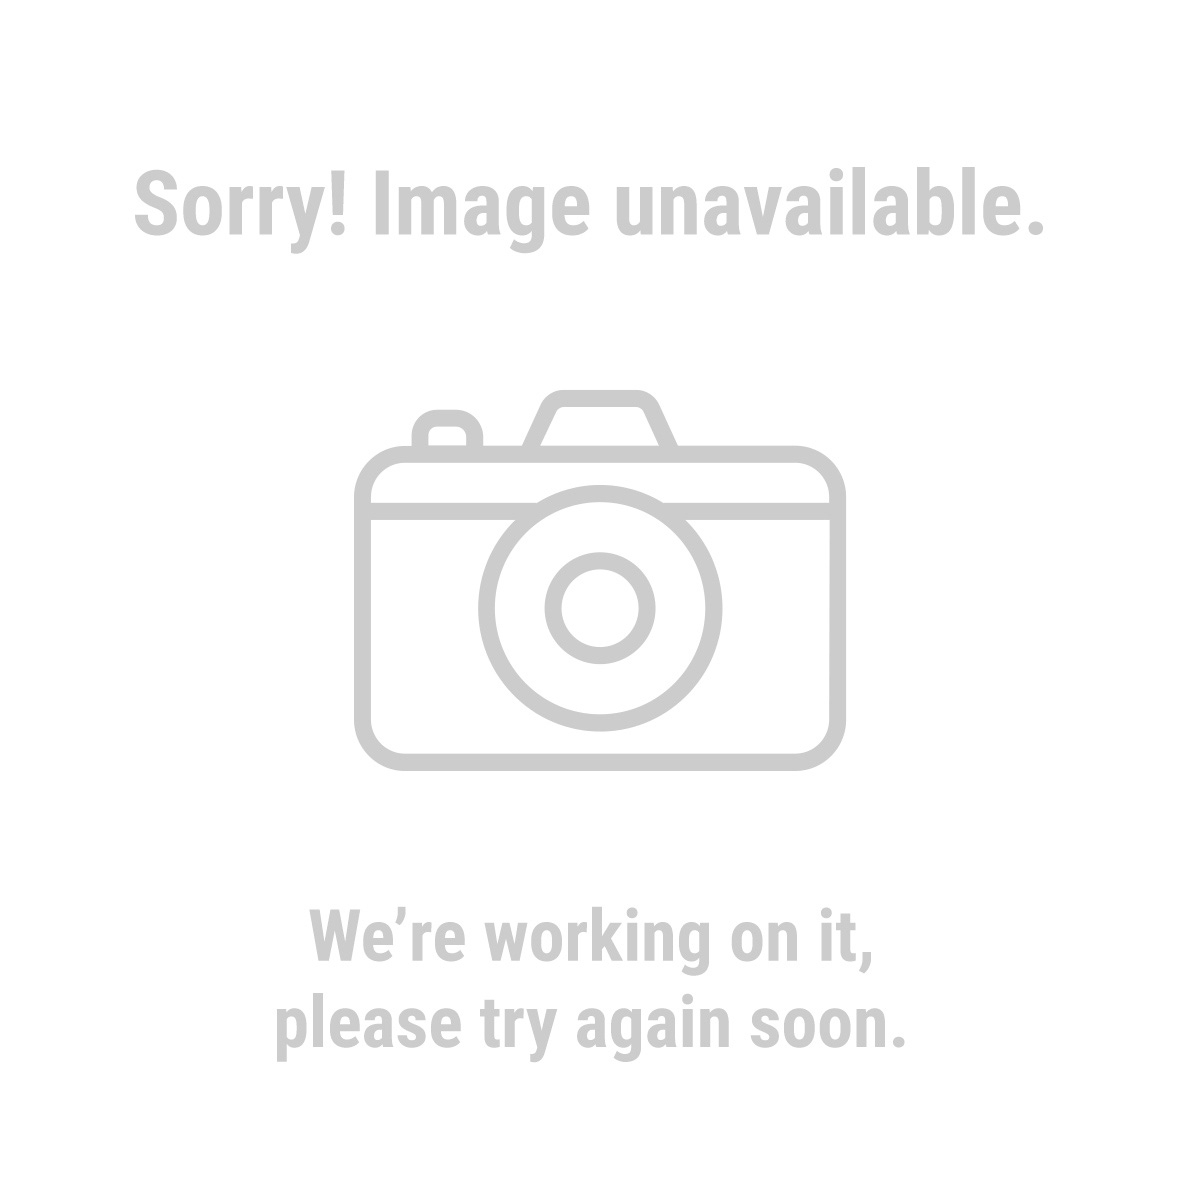 U.S. General® Pro 69395 56 in., 11 Drawer Glossy Red Industrial Roller Cabinet